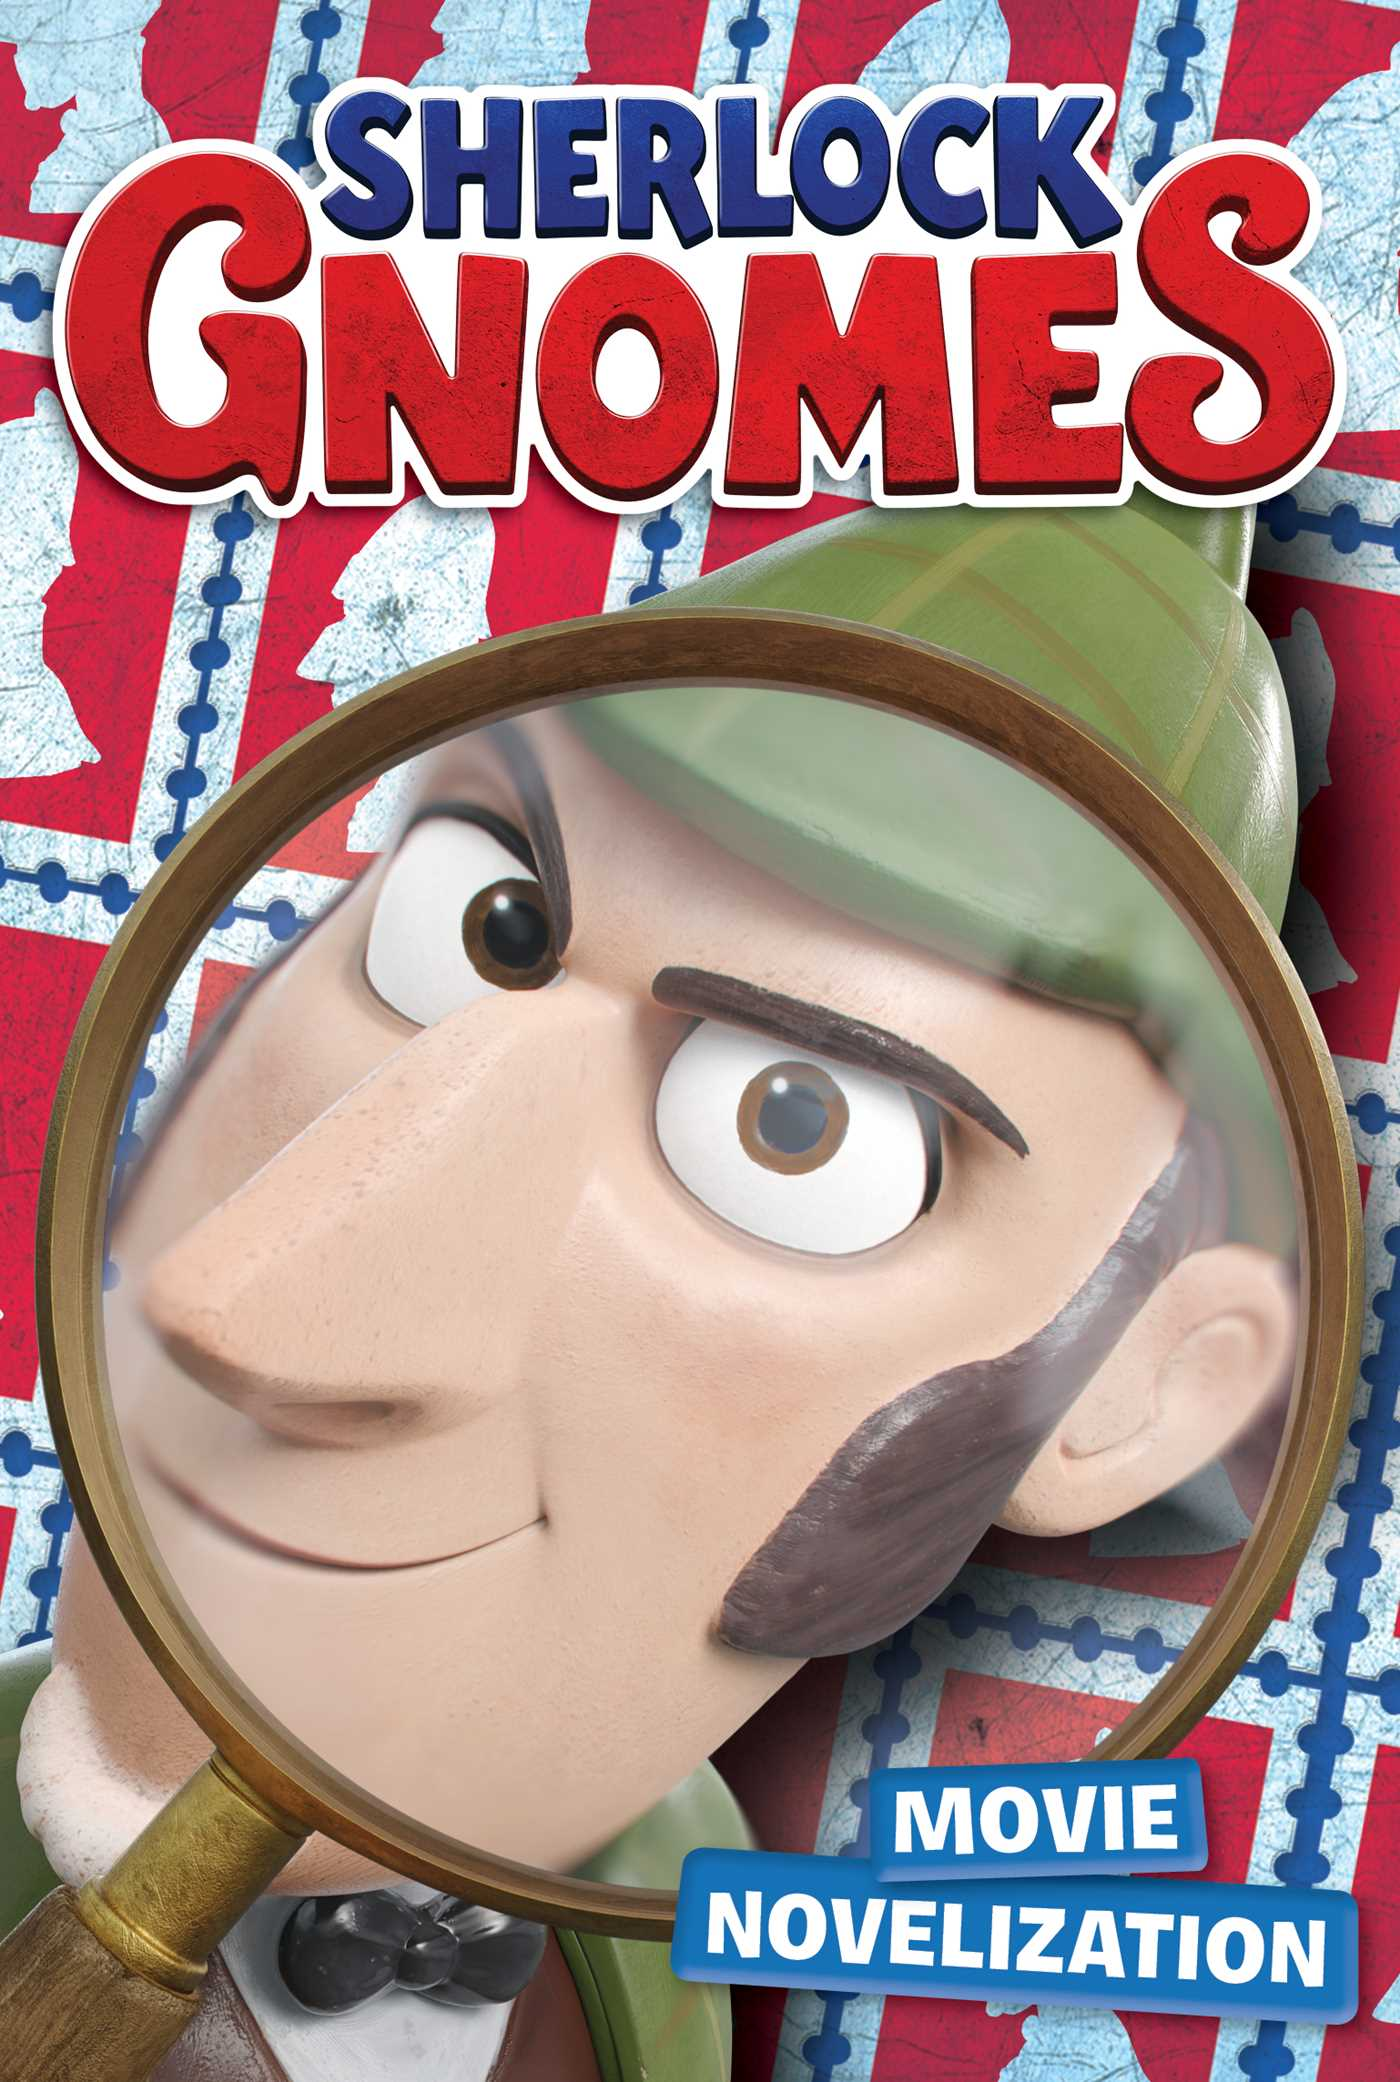 Sherlock gnomes movie novelization 9781534409569 hr